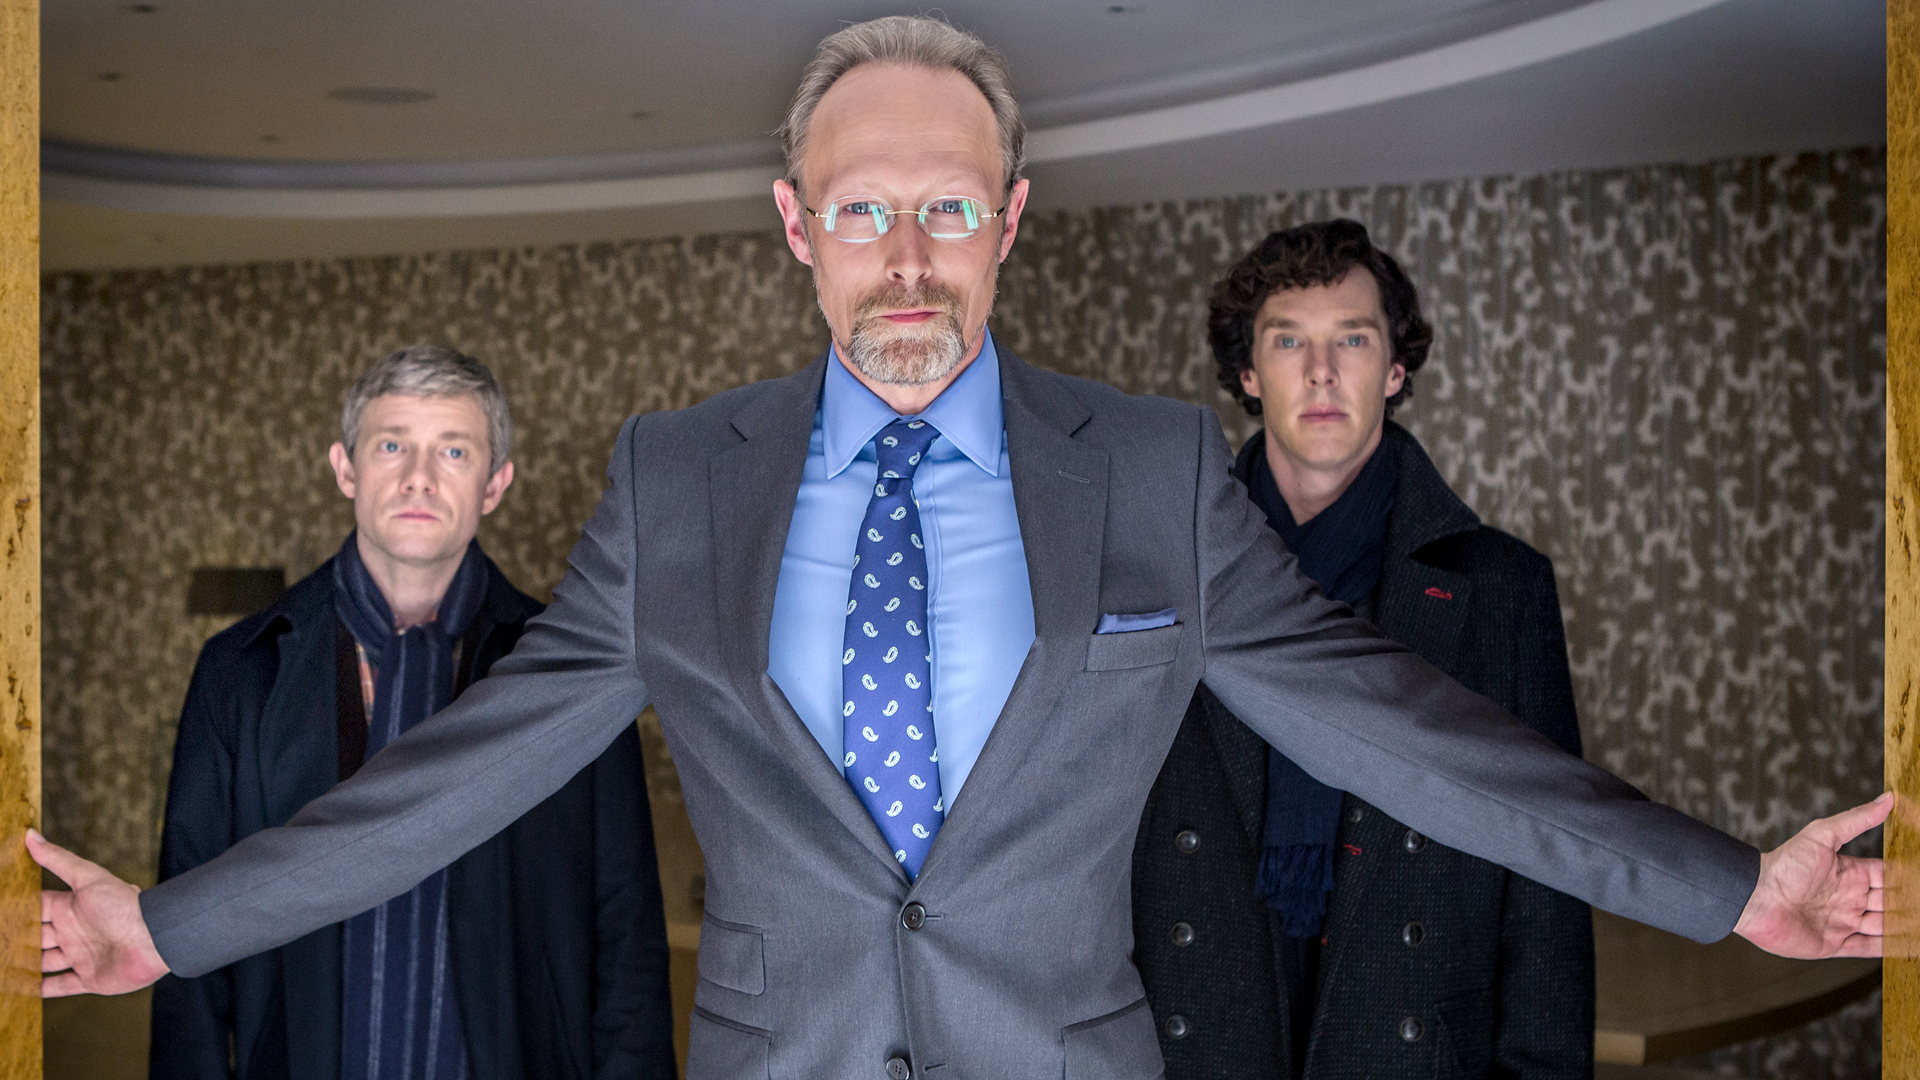 Sherlock, Season 3: Episode 3 Preview | 3. His Last Vow | Season 3 | Sherlock